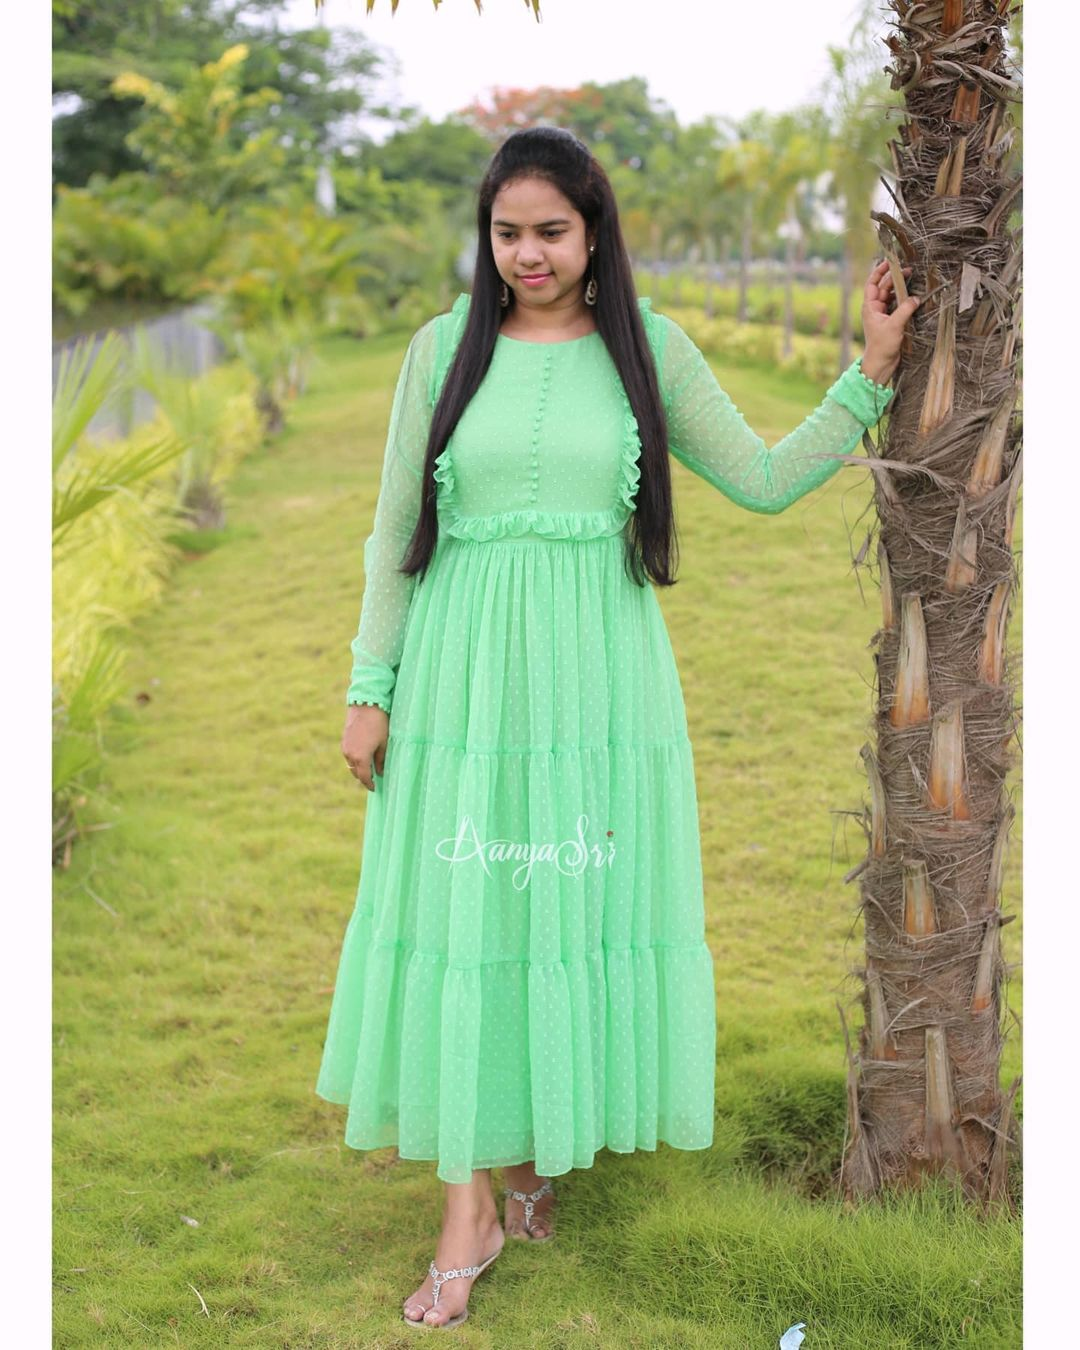 Sea green layered ankle length frock with ruffle & potlis detailing on the yoke . Comes with full sleeves and potlis on the sleeves and boat neck. Price : RS. 2600. 2021-06-28